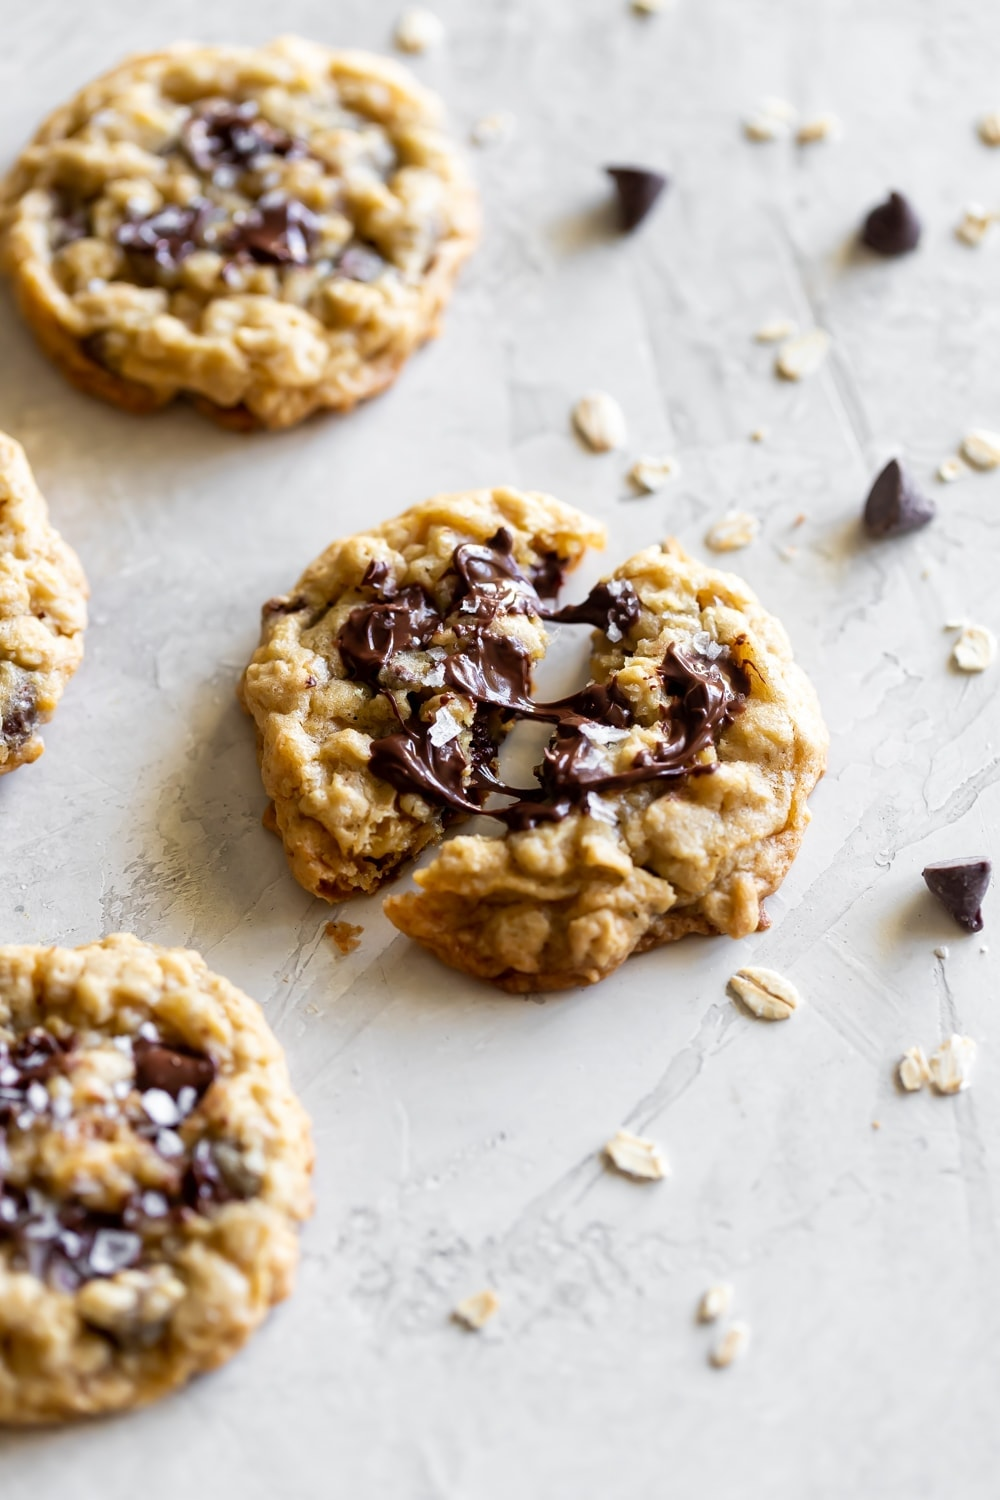 melted chocolate chips in oatmeal chocolate chip cookies